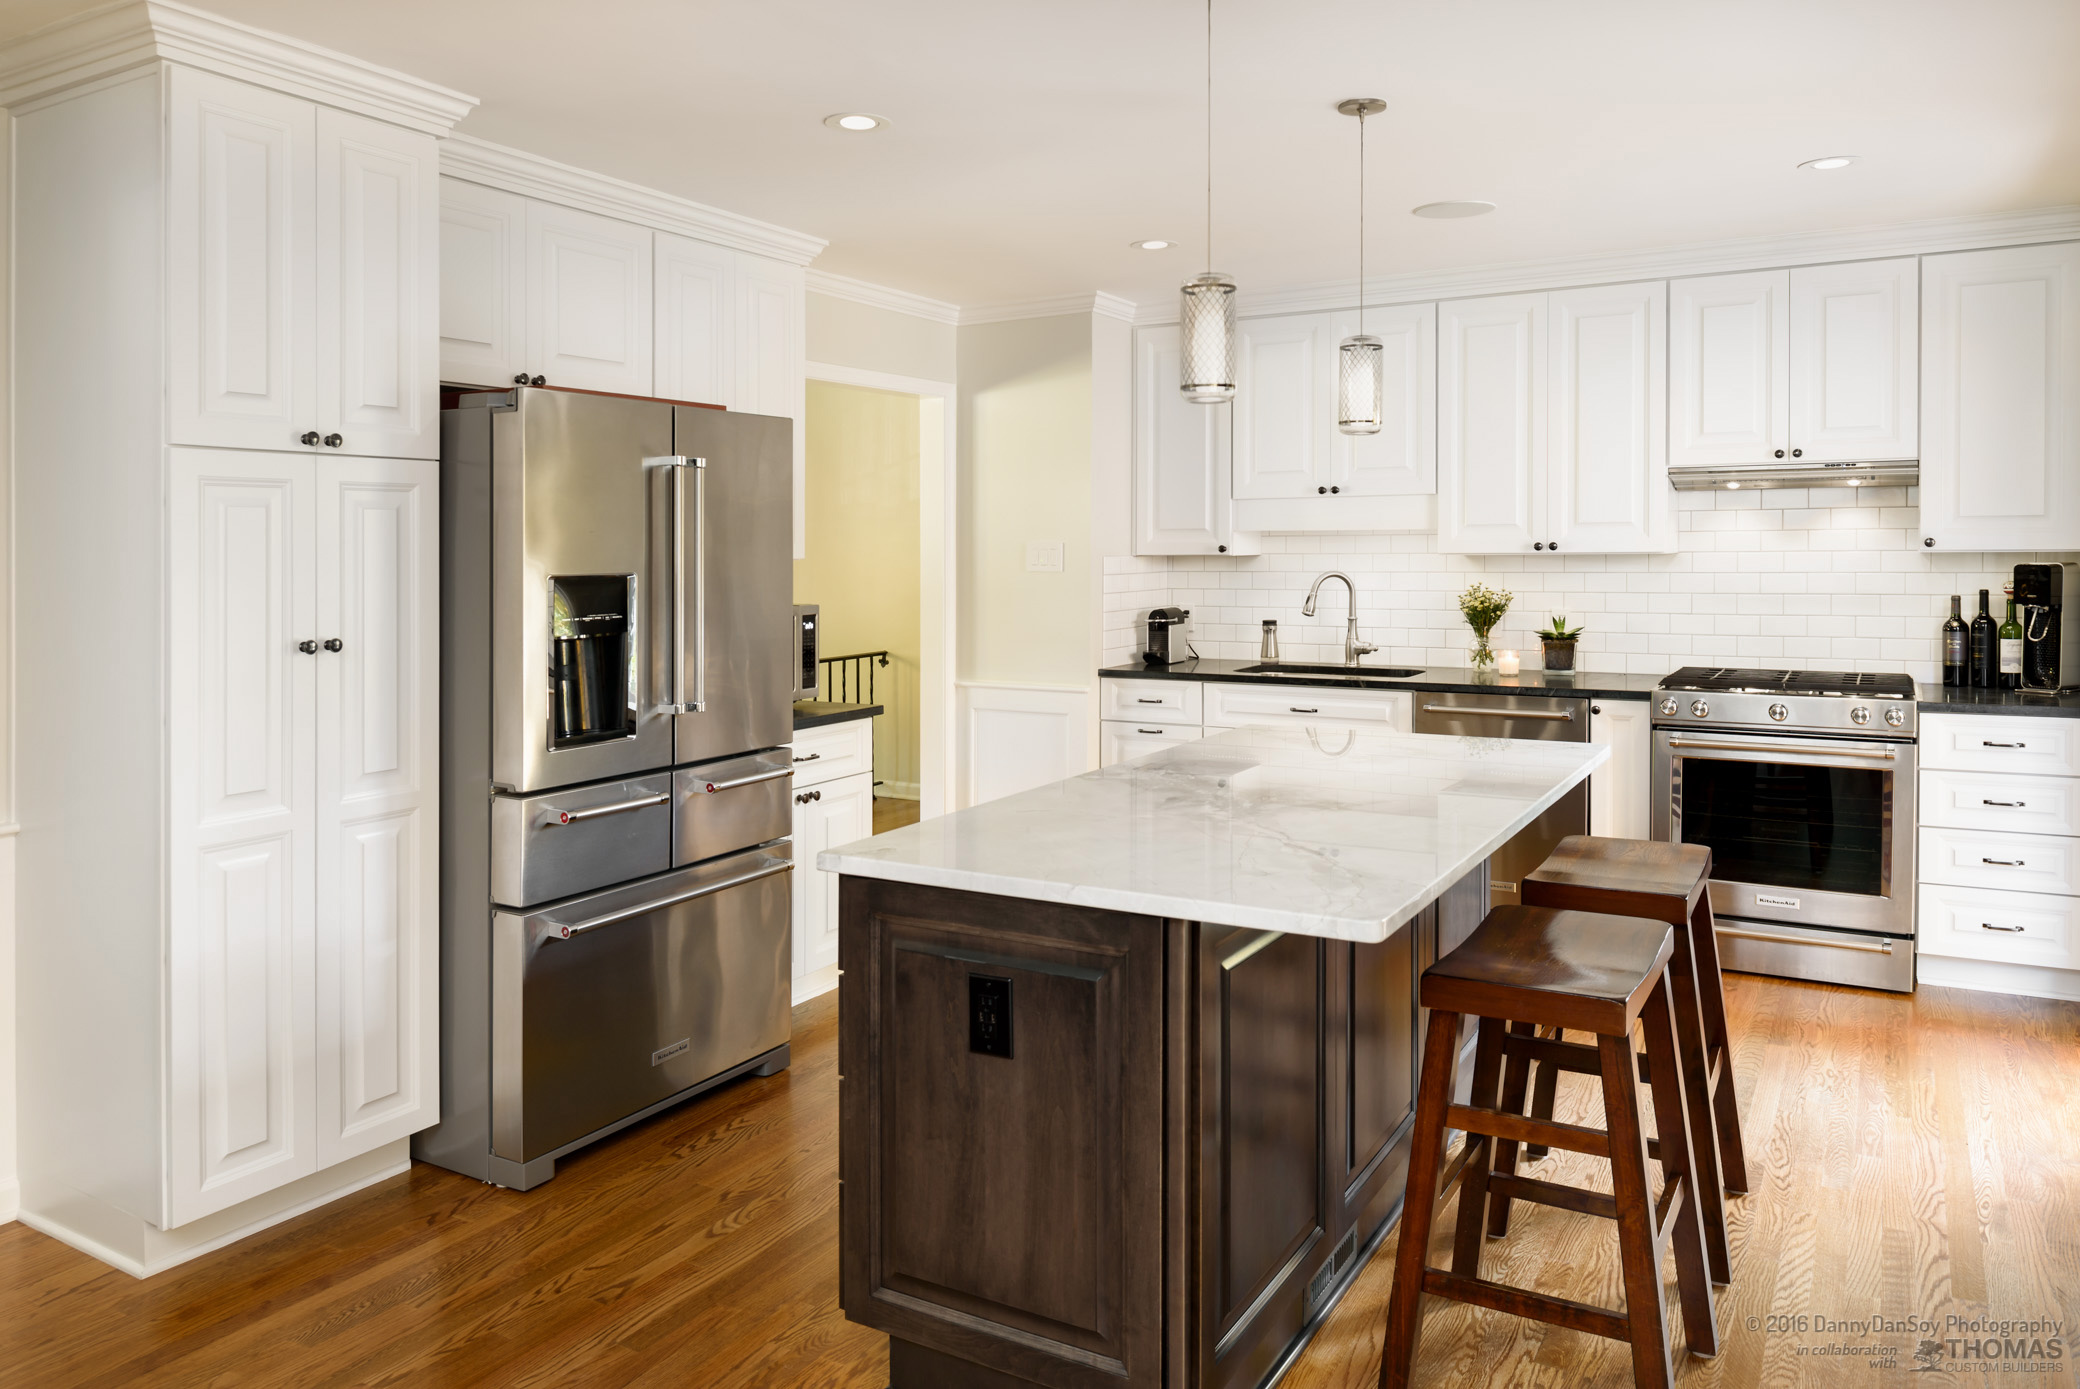 Kitchen Remodeling Contractor - Manassas, Fairfax, Alexandria, Arlington